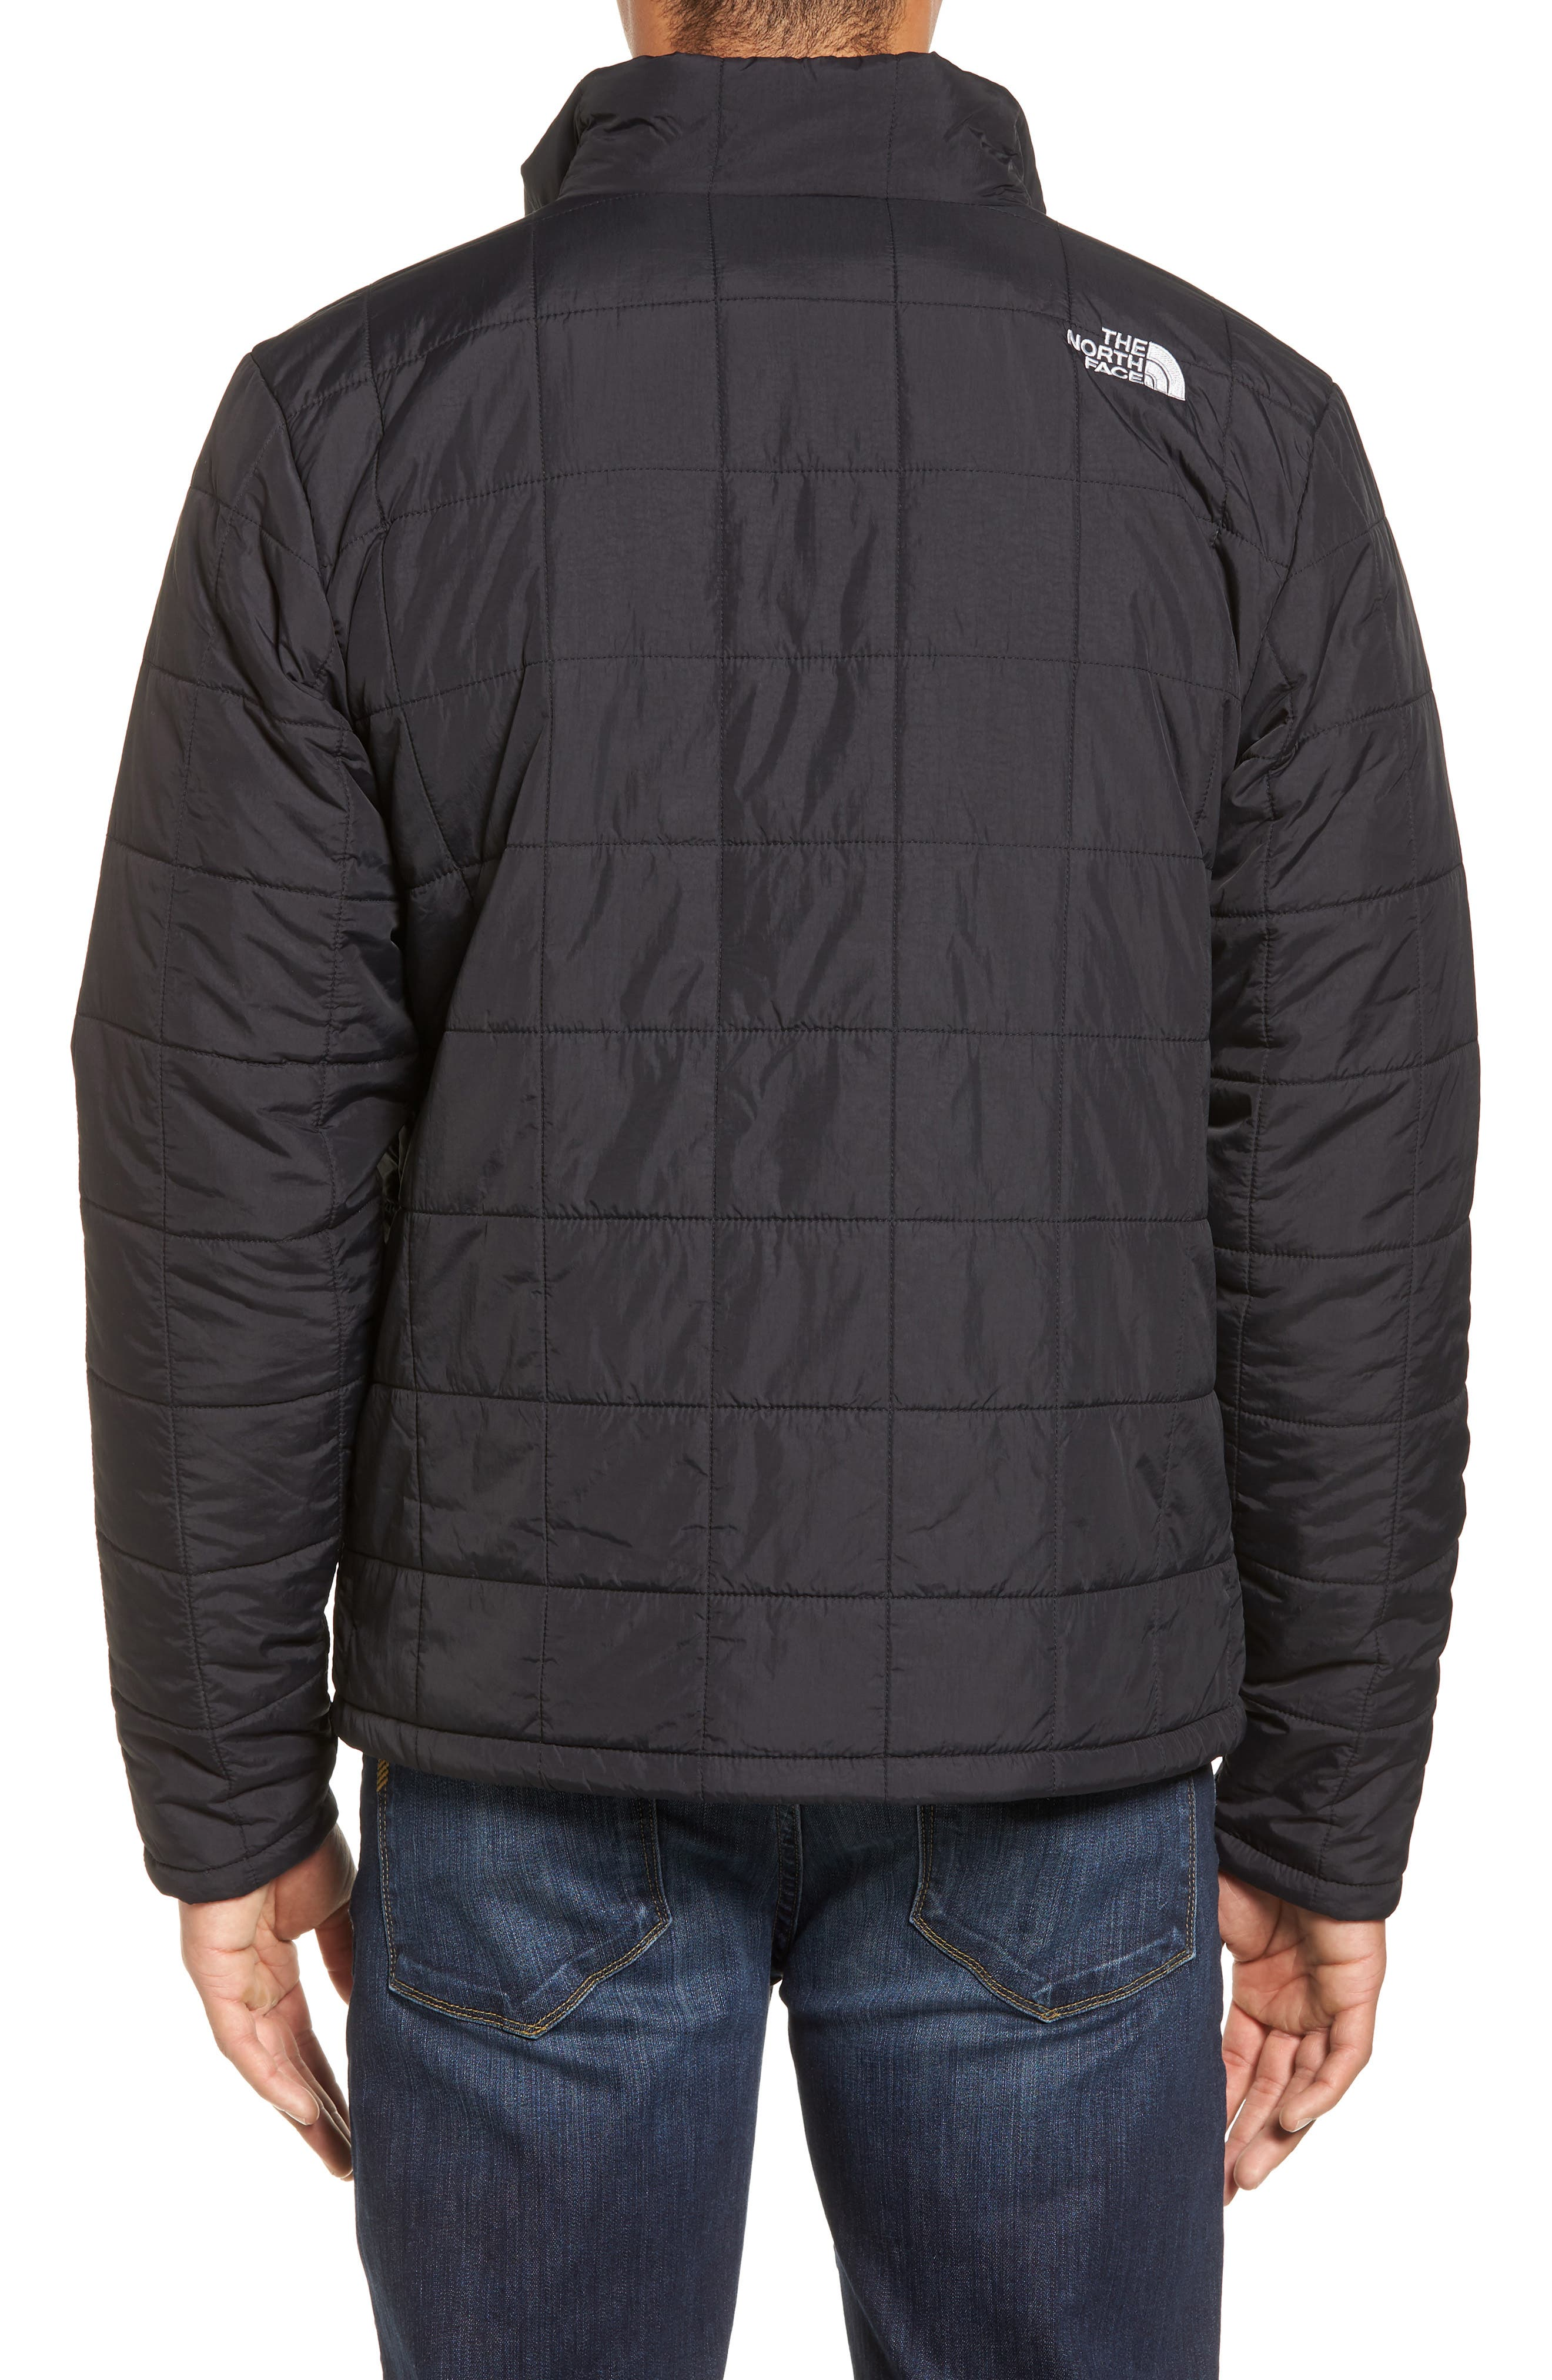 THE NORTH FACE, Harway Heatseaker<sup>™</sup> Jacket, Alternate thumbnail 2, color, 001